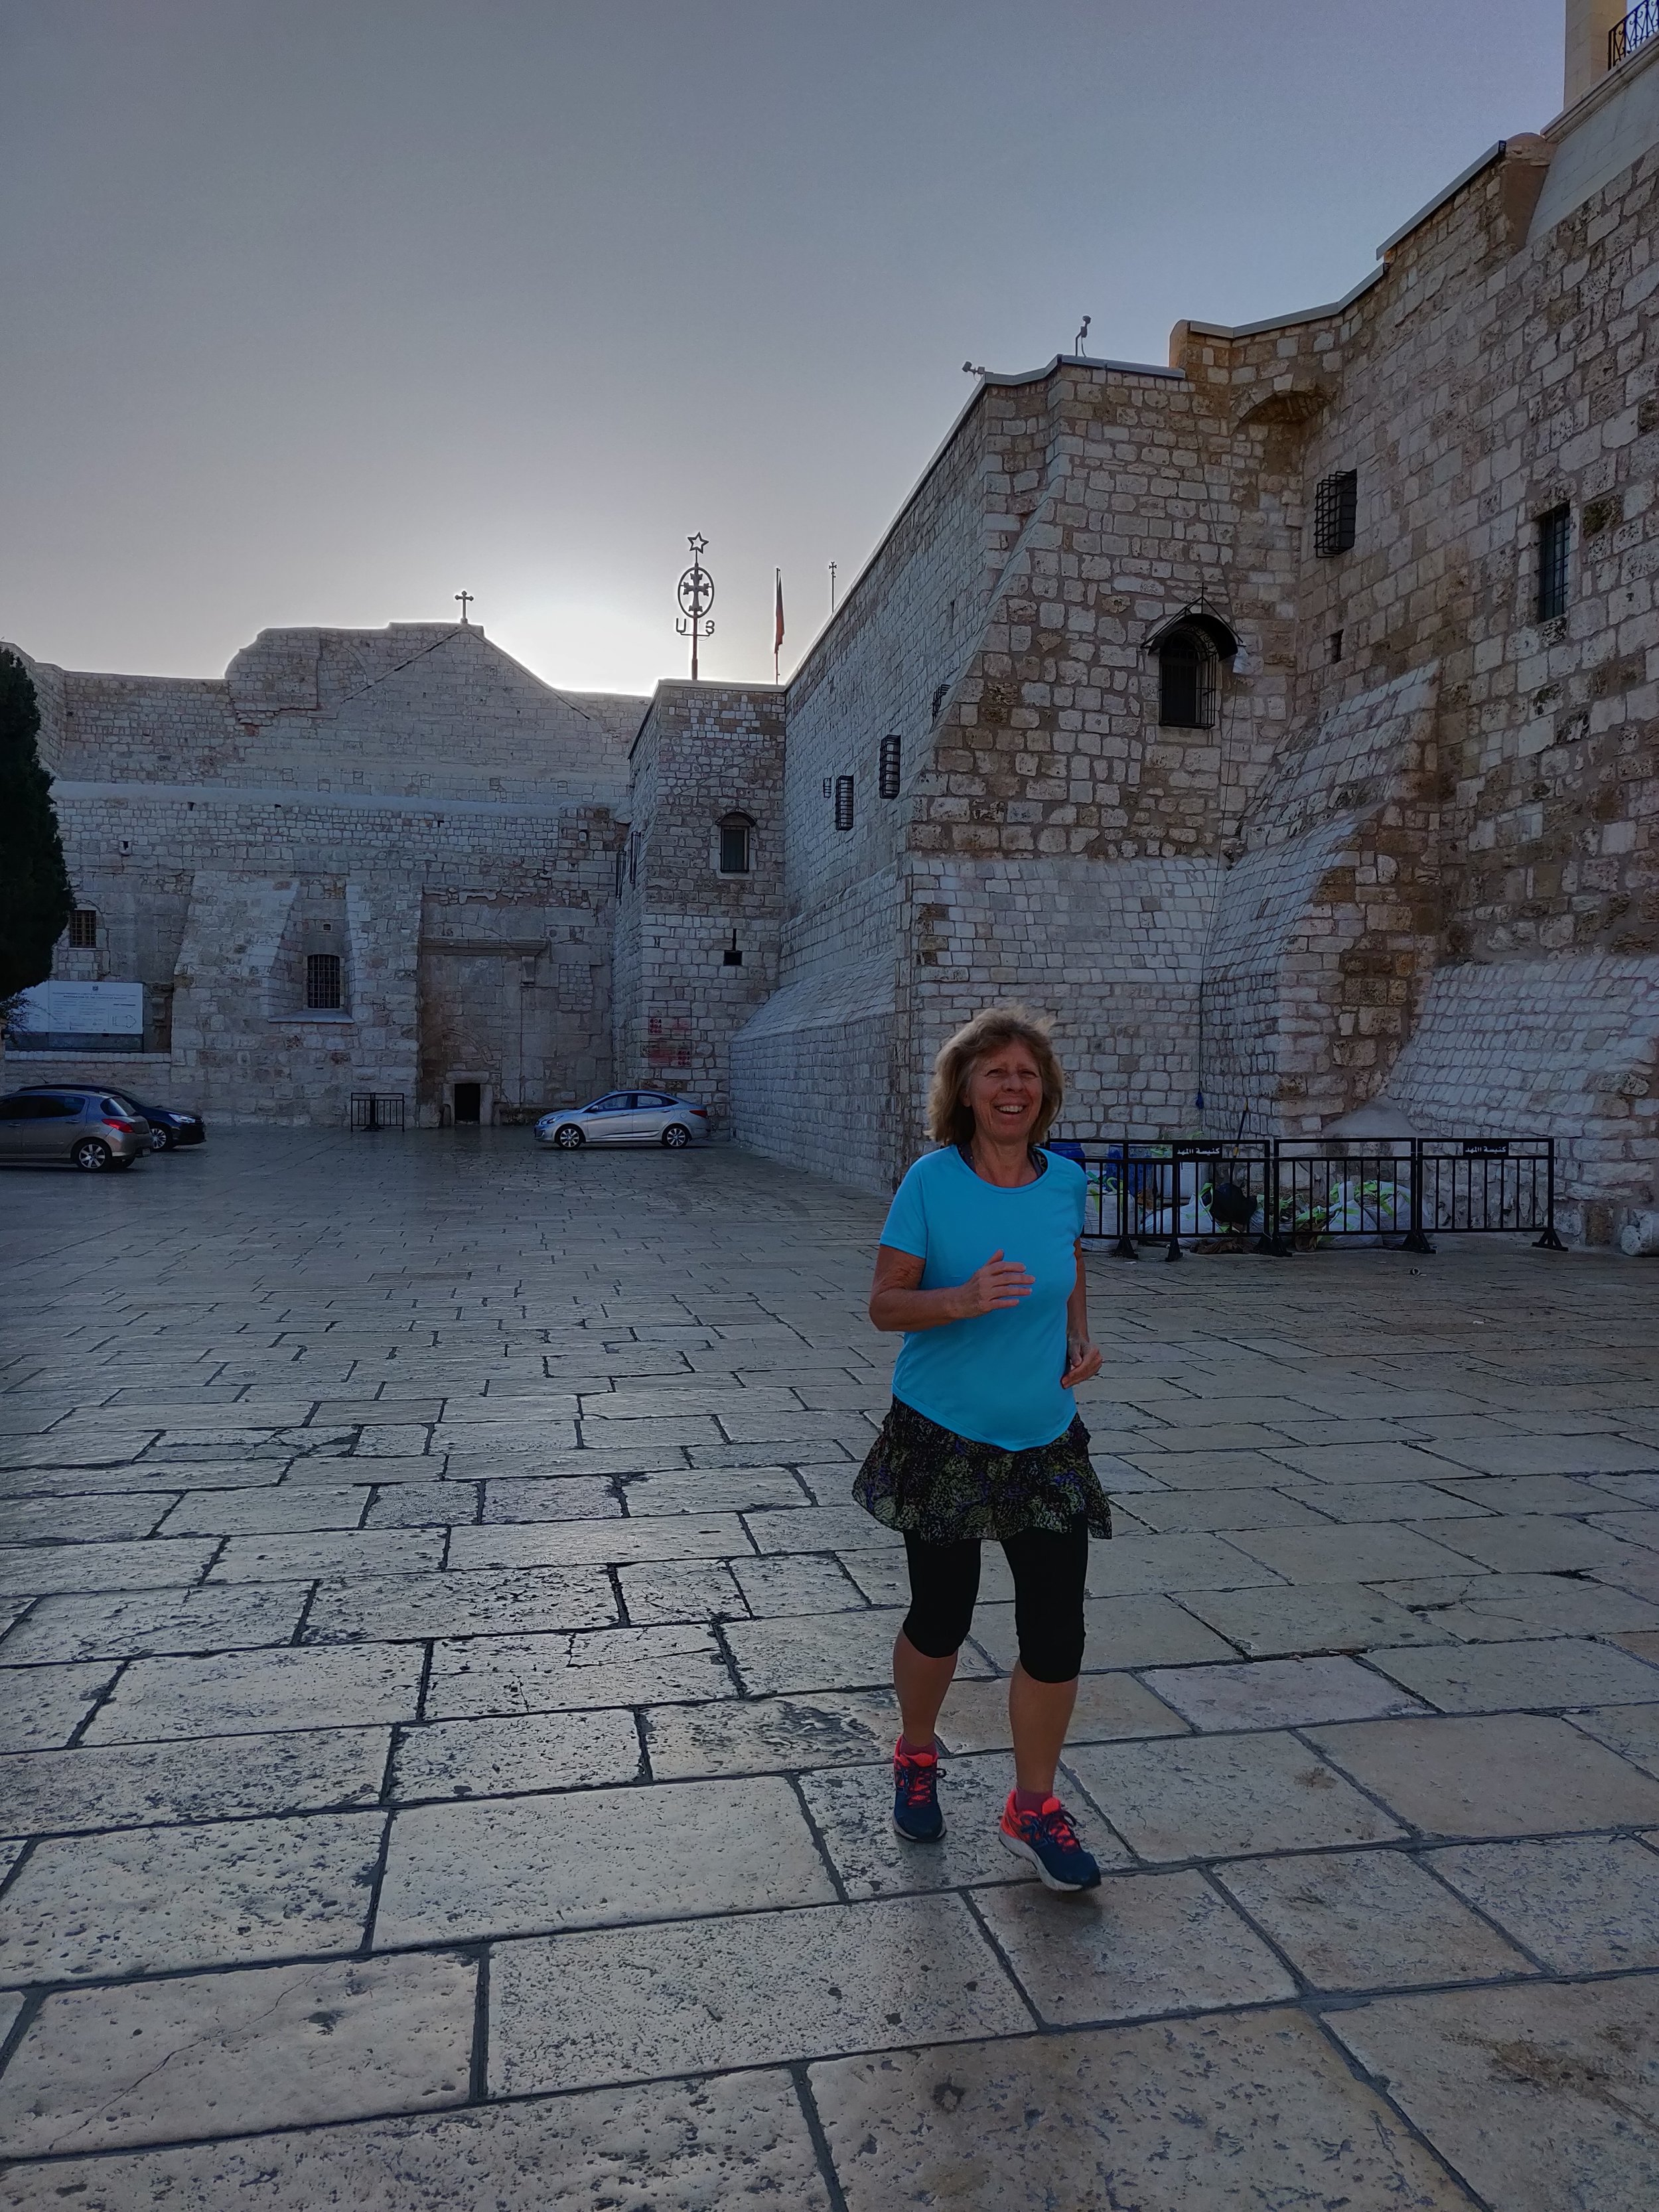 One of my recent adventures: Running in Bethlehem, March 2019